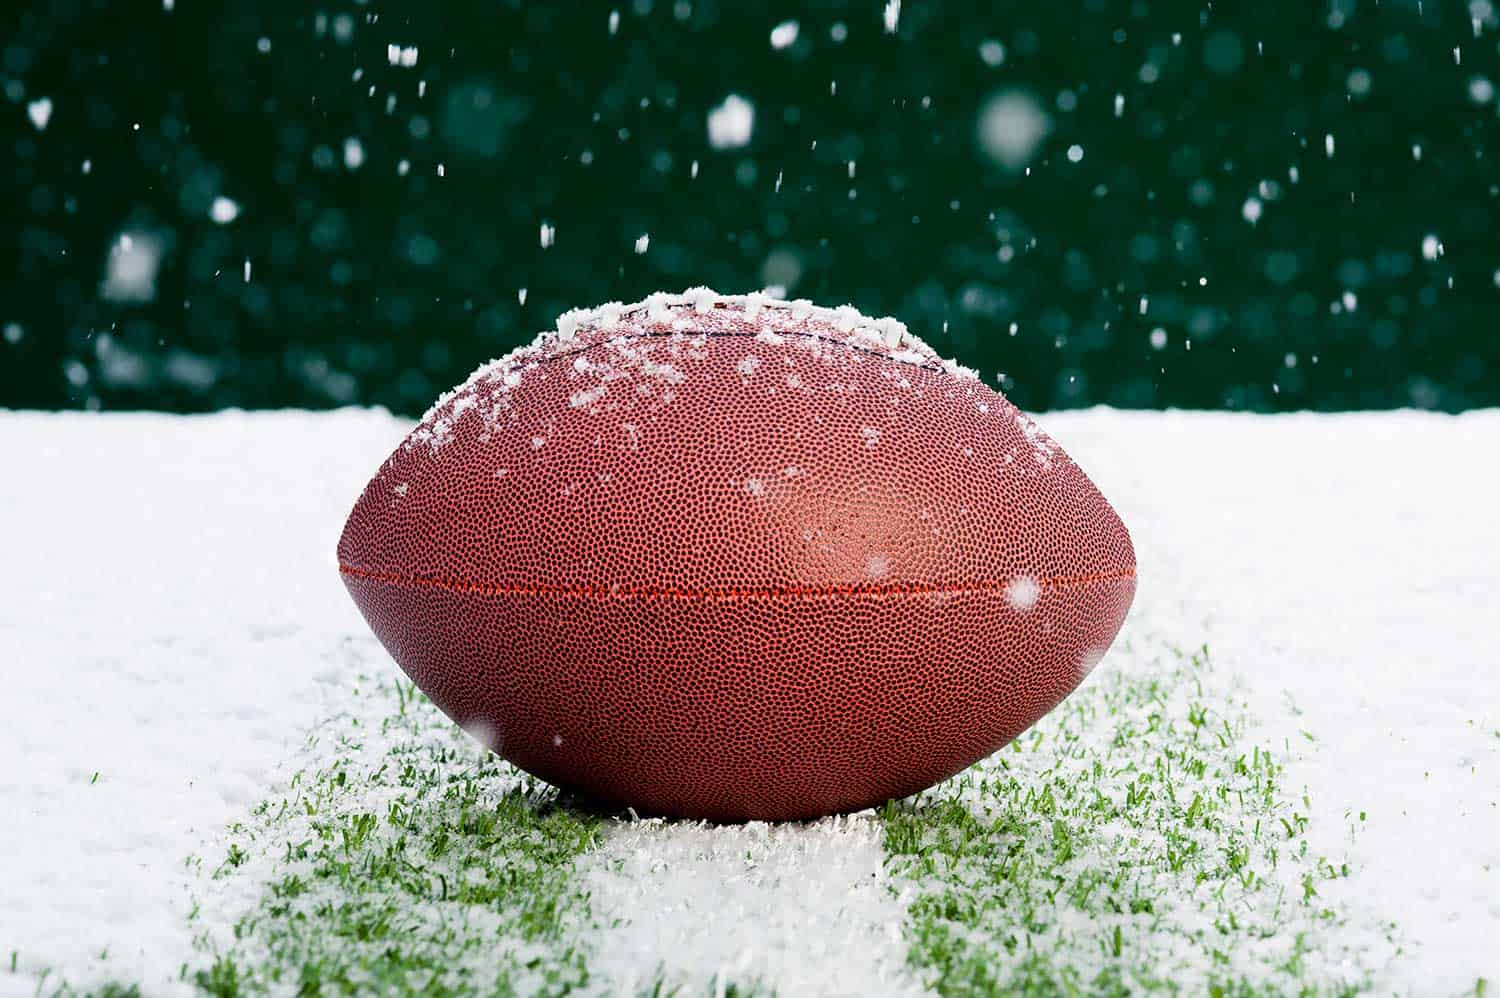 American football on snow covered grass